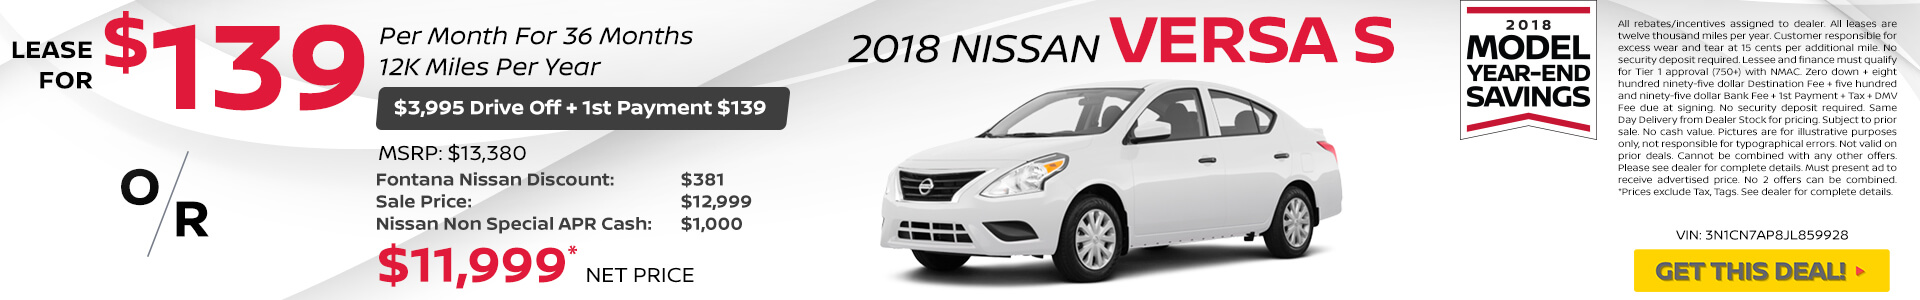 Nissan Versa $139 Lease or $11,999 Purchase